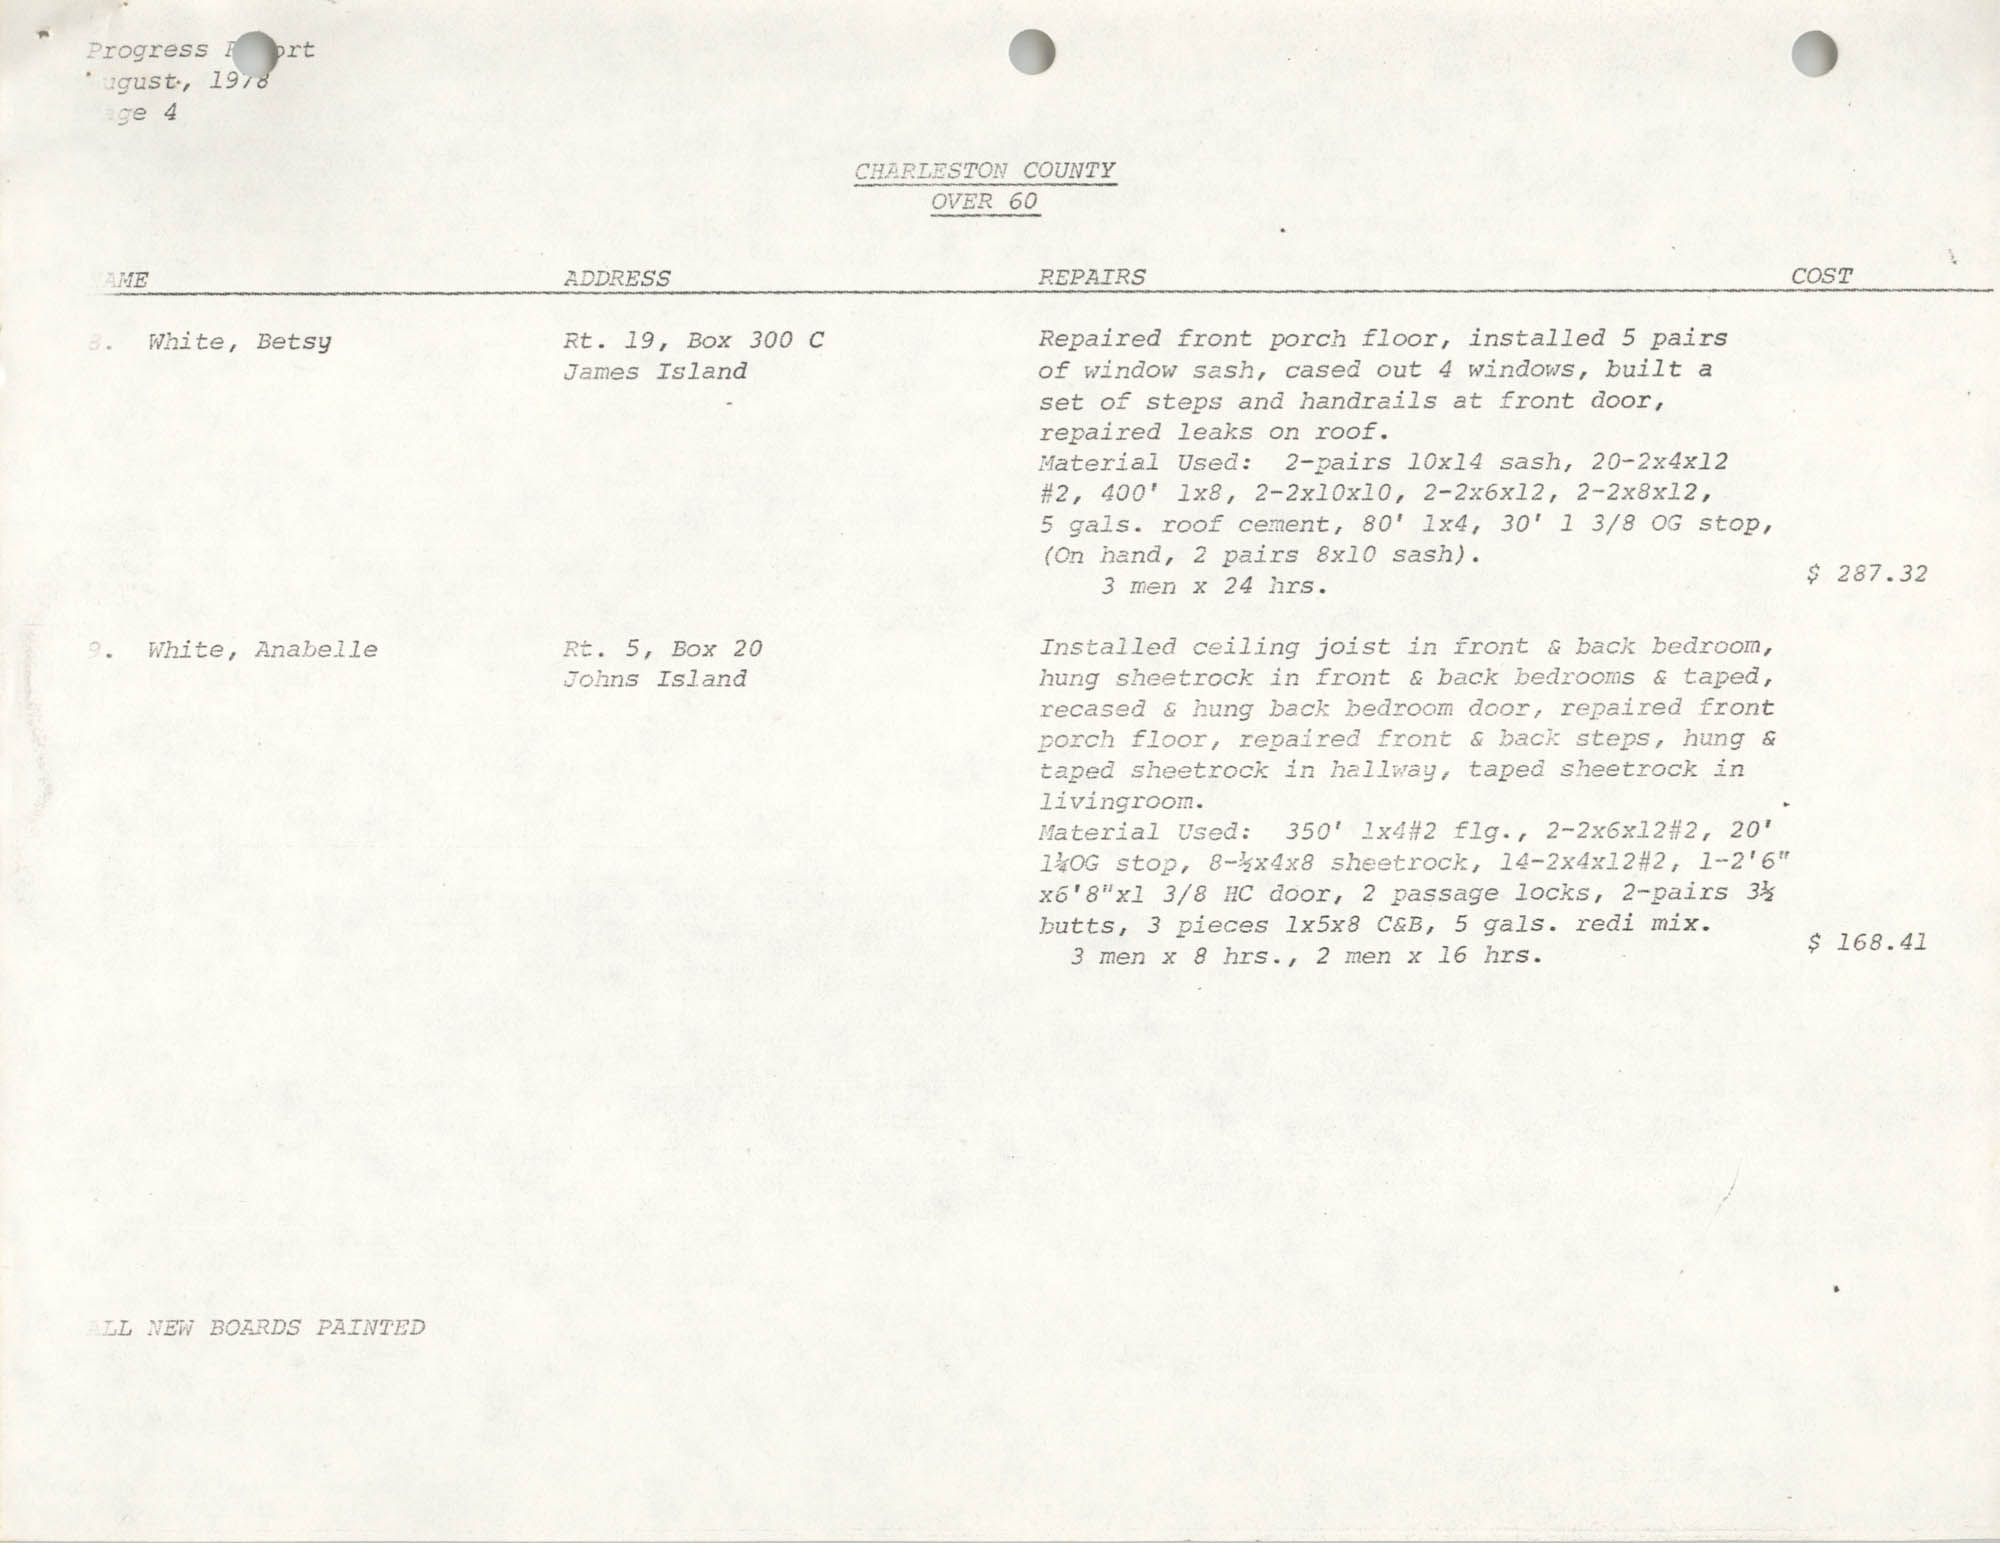 Housing Assistance Program Report, August 1978, Page 4